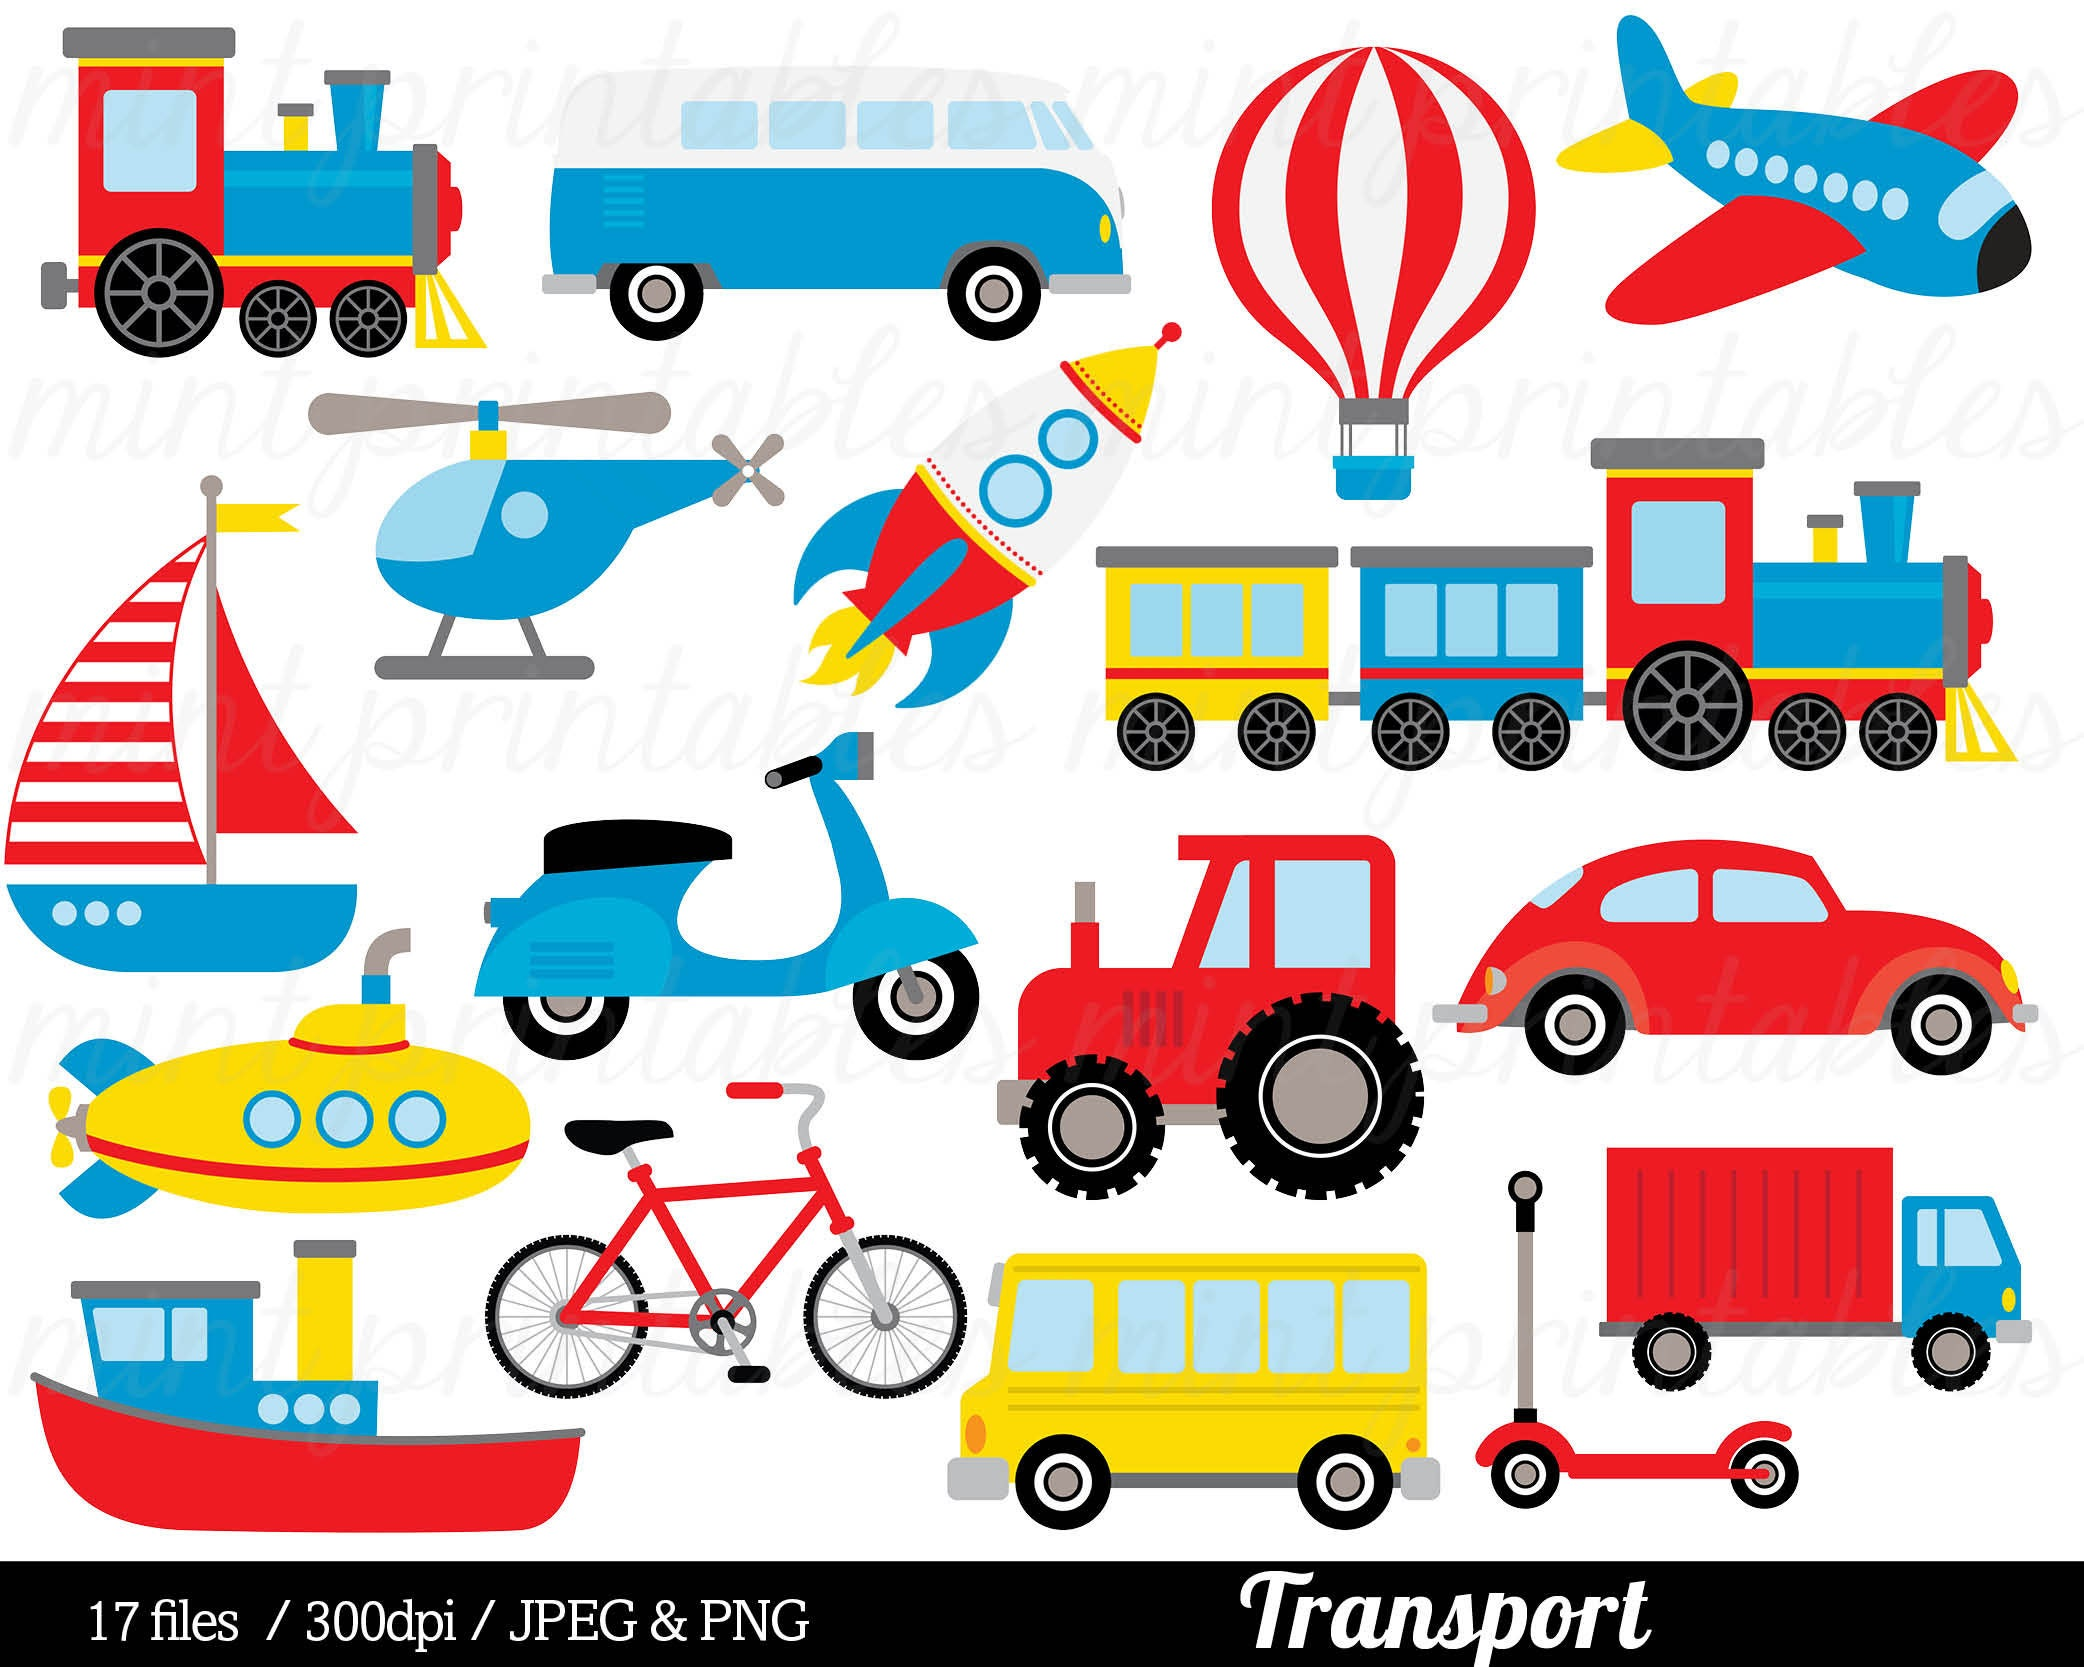 Transport Clipart Transport Clip Art Train Car Truck